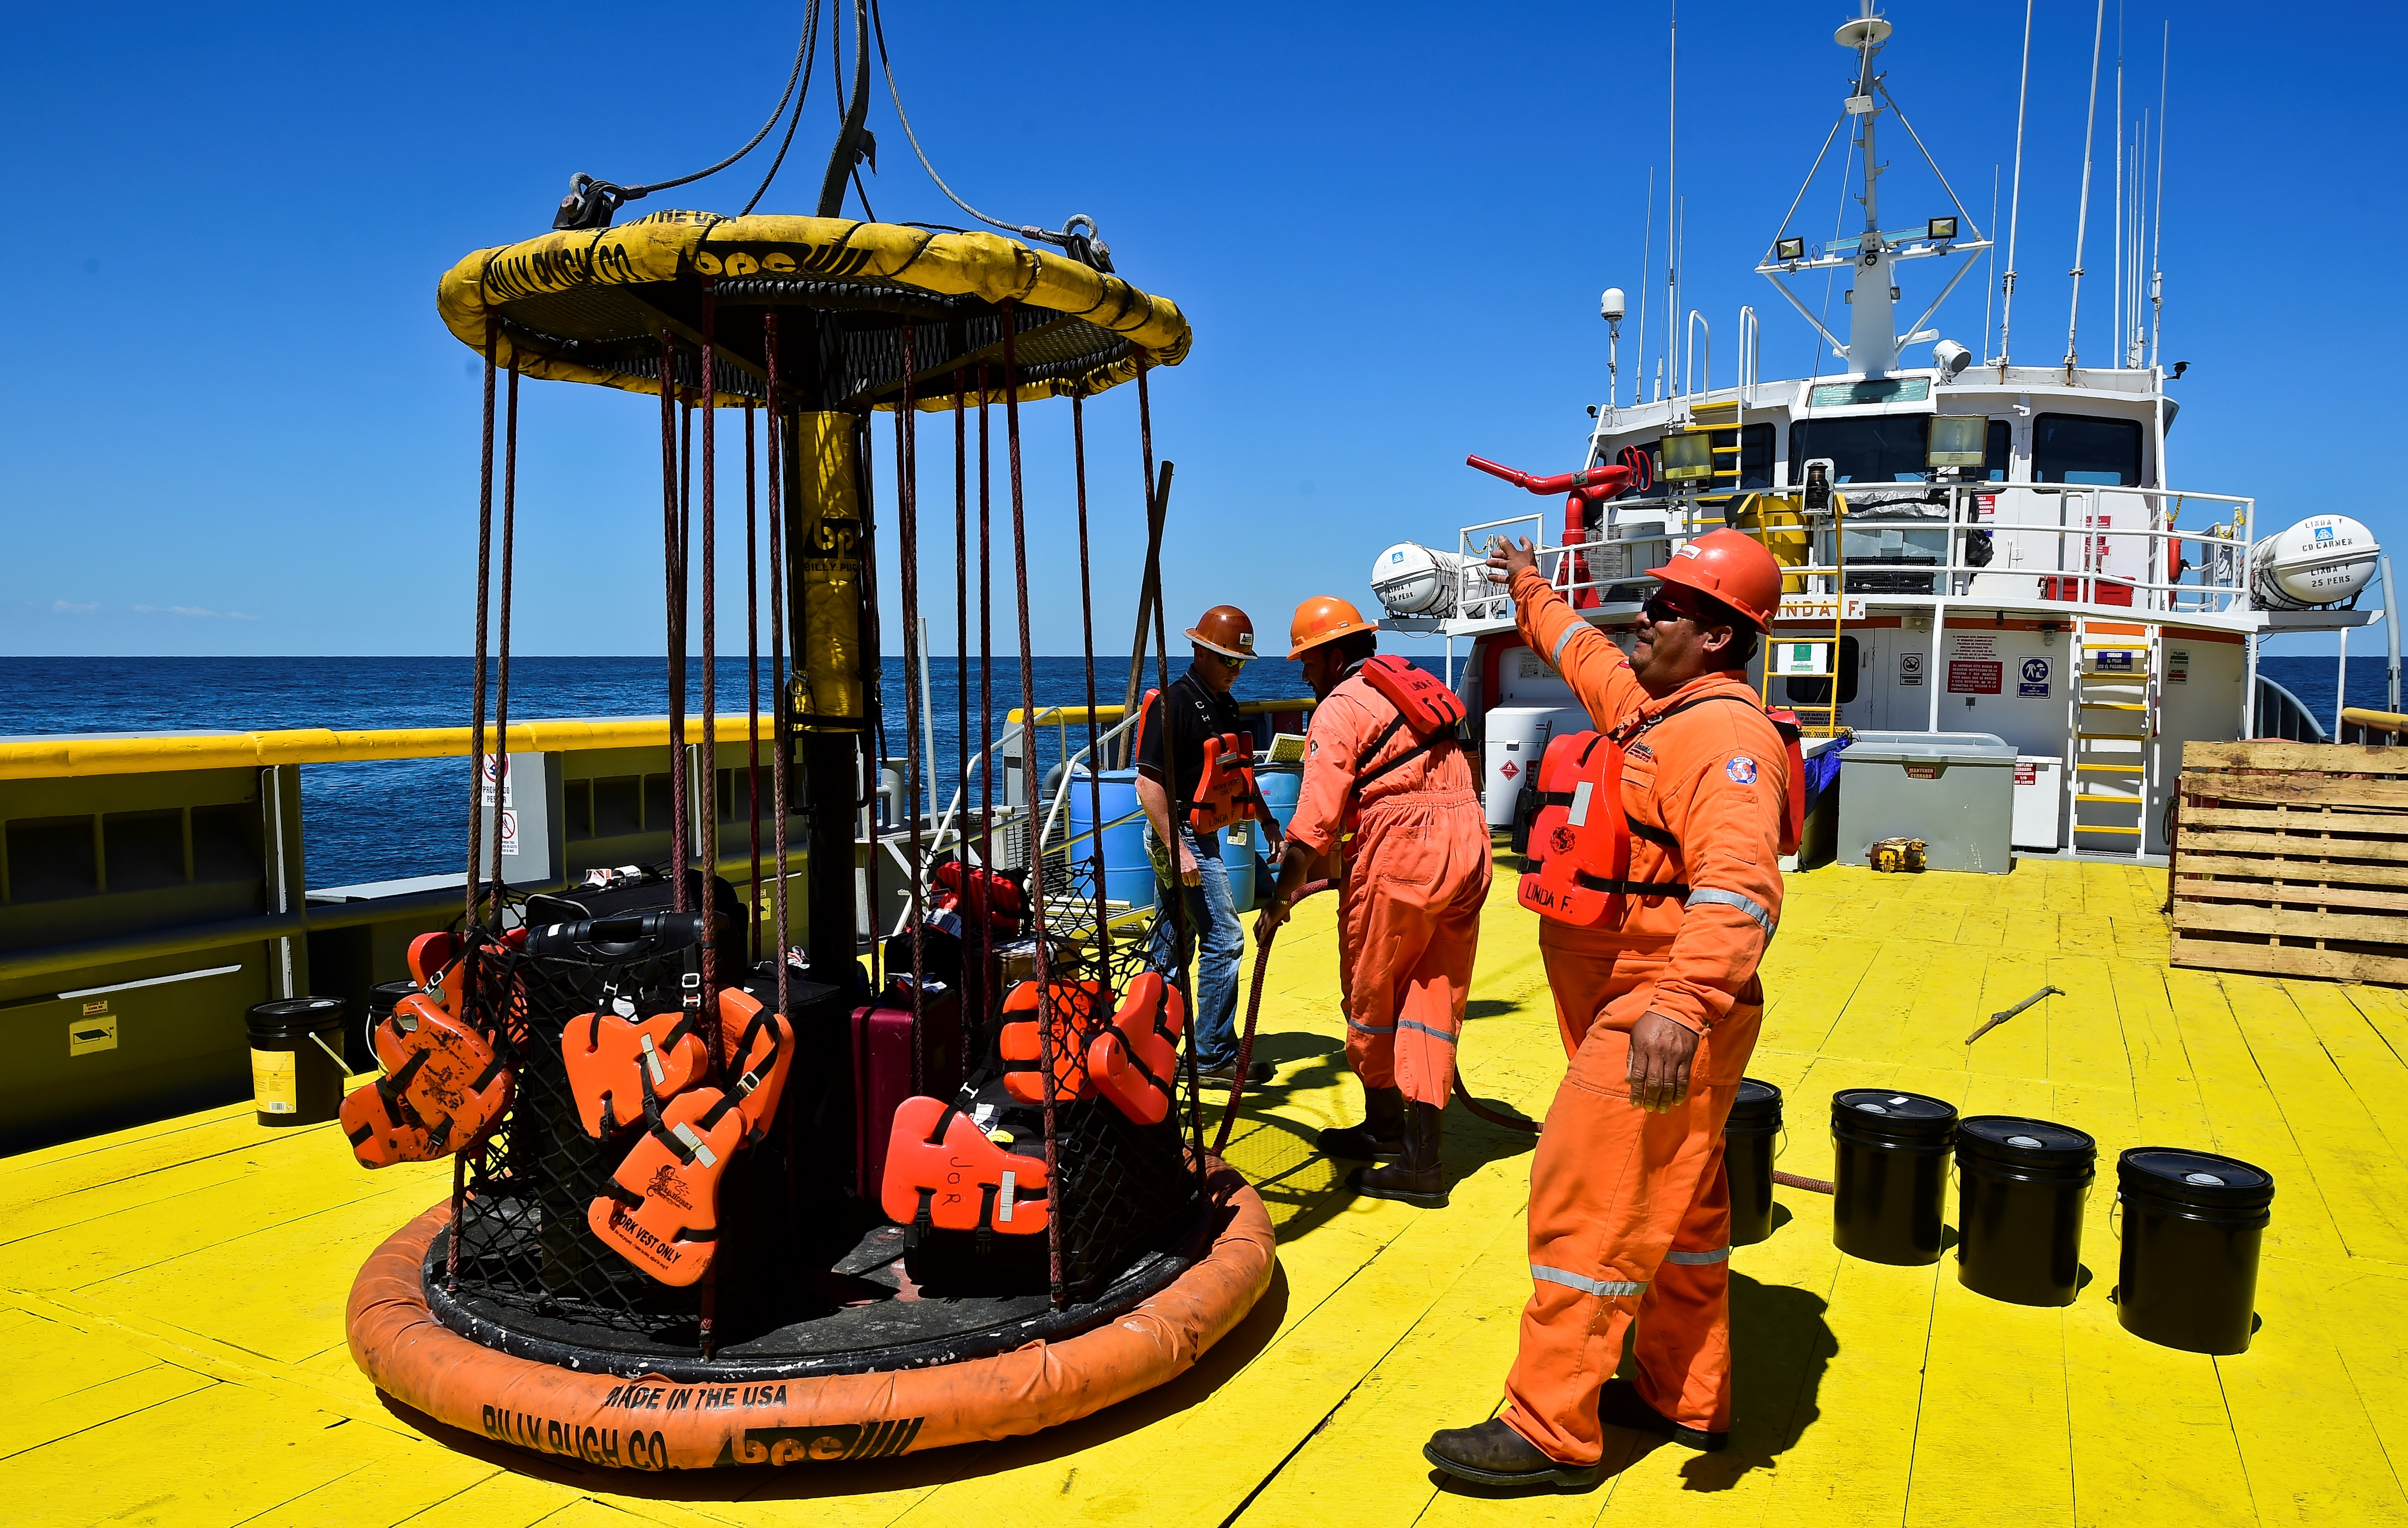 Sailors and workers load members luggage onto the L/B MYRTLE Offshore Support Vessel -a scientific plataform working in the Gulf of Mexico- in front of the Yucatan State, in Mexico, on May 7, 2016.  A scientific mission led by IODP (International Ocean Discovery Program) studies the Chicxulub impact crater on the Gulf of Mexico, created after an asteroid crashed 66 million years ago. The research aims to find evidence of the origin of the universe and the evolution of life on Earth. / AFP / RONALDO SCHEMIDT        (Photo credit should read RONALDO SCHEMIDT/AFP/Getty Images)